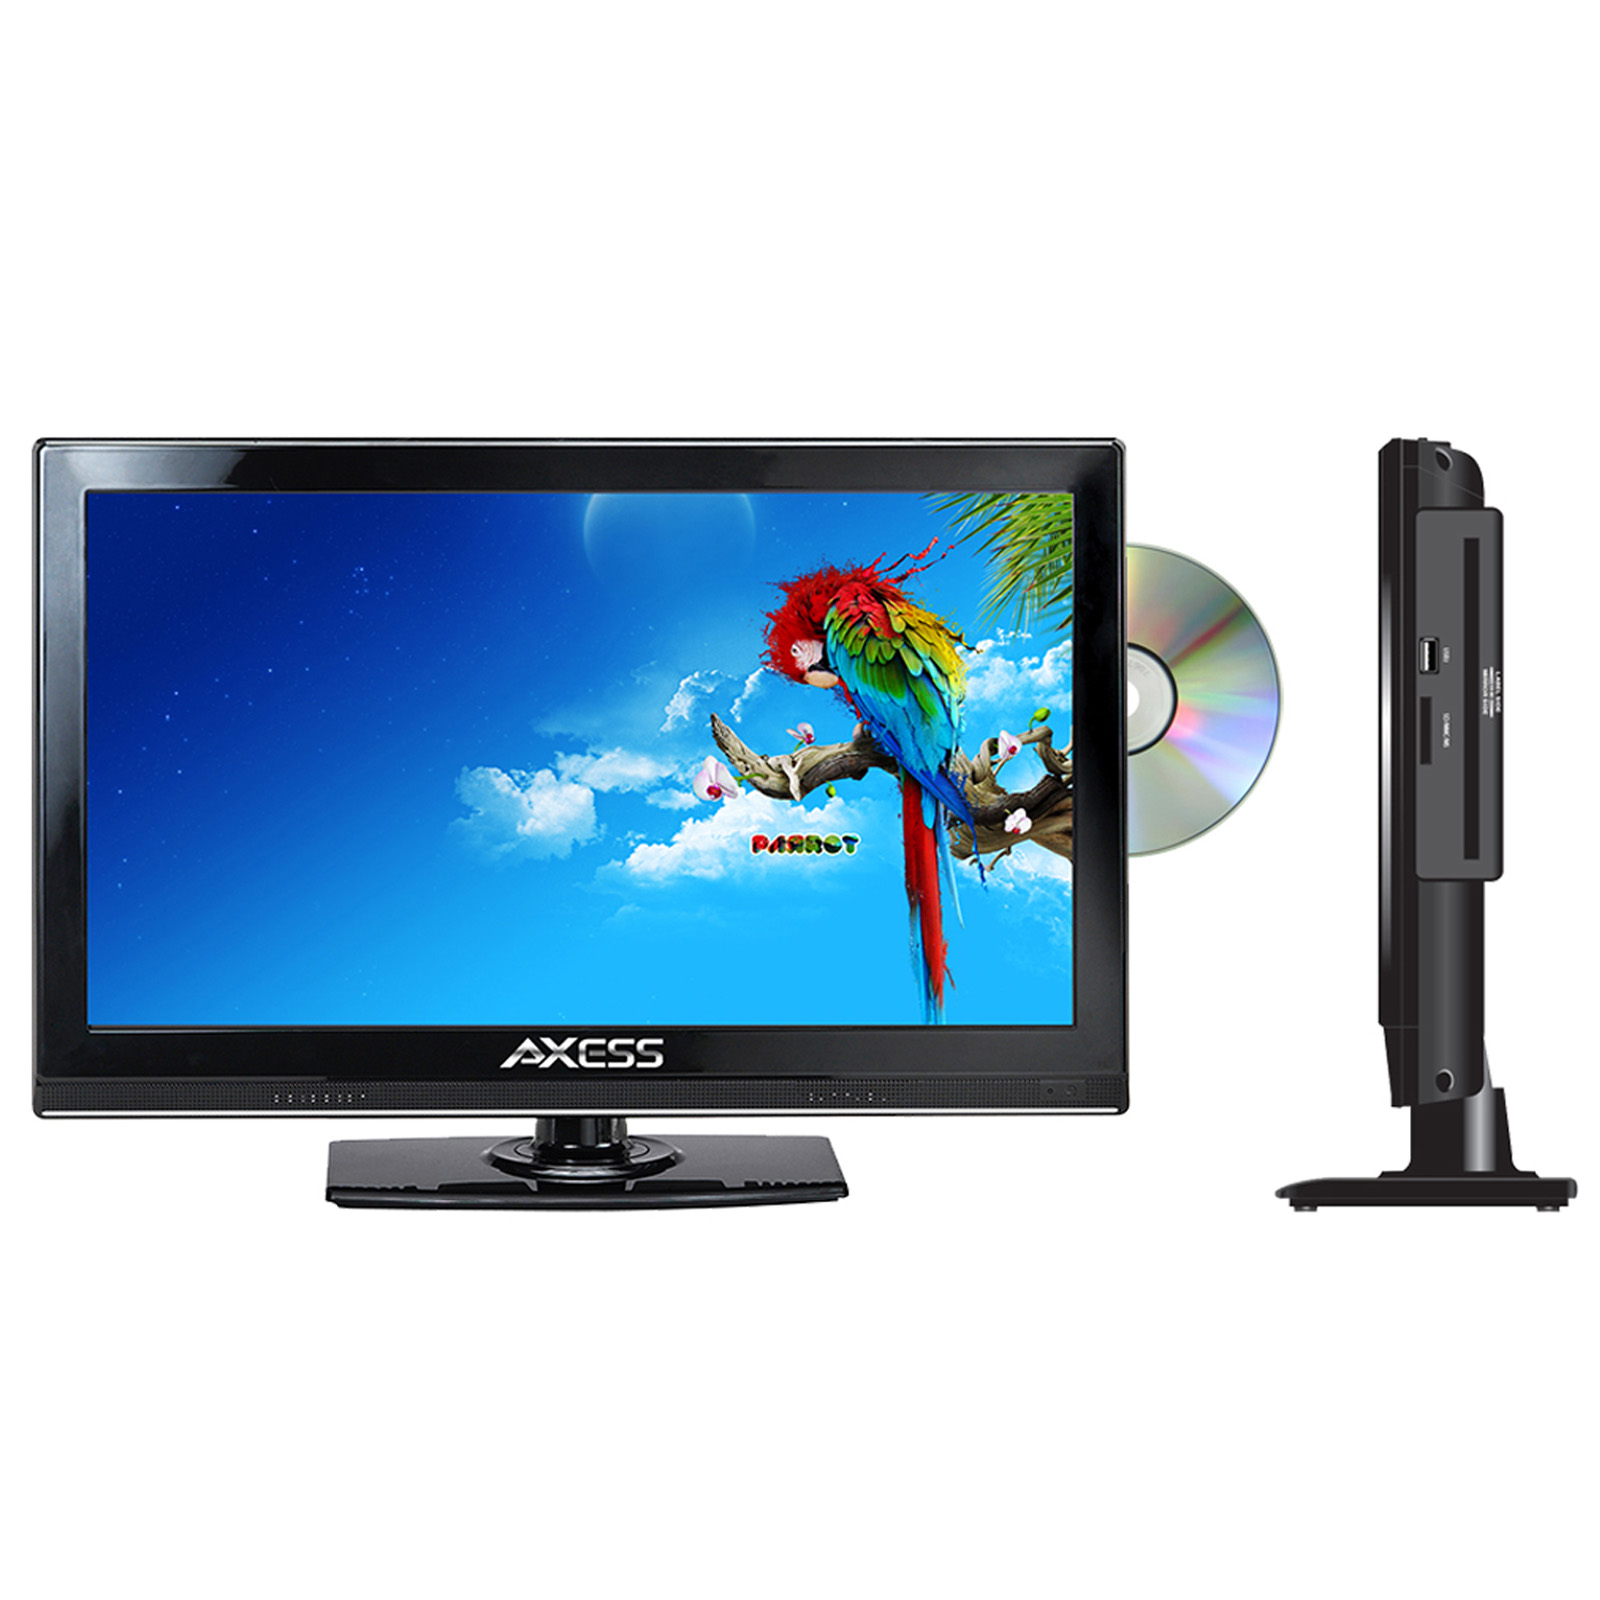 "Axess 13.3"" Class HD (720P) LED TV with Built-in DVD (TVD1801-13)"